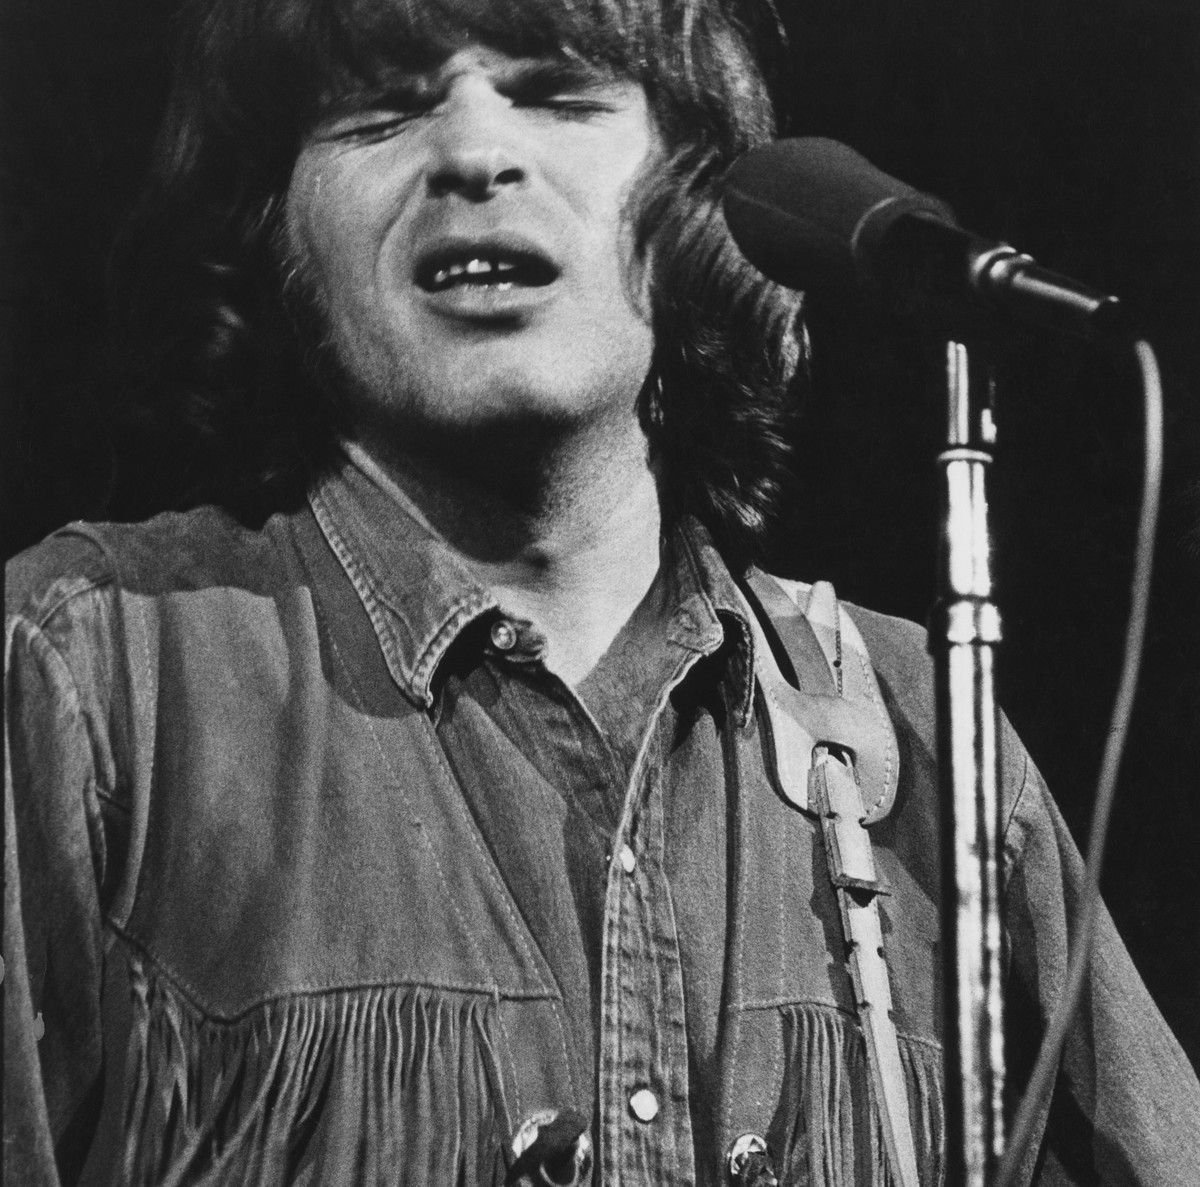 John Fogerty sings into a microphone onstage.